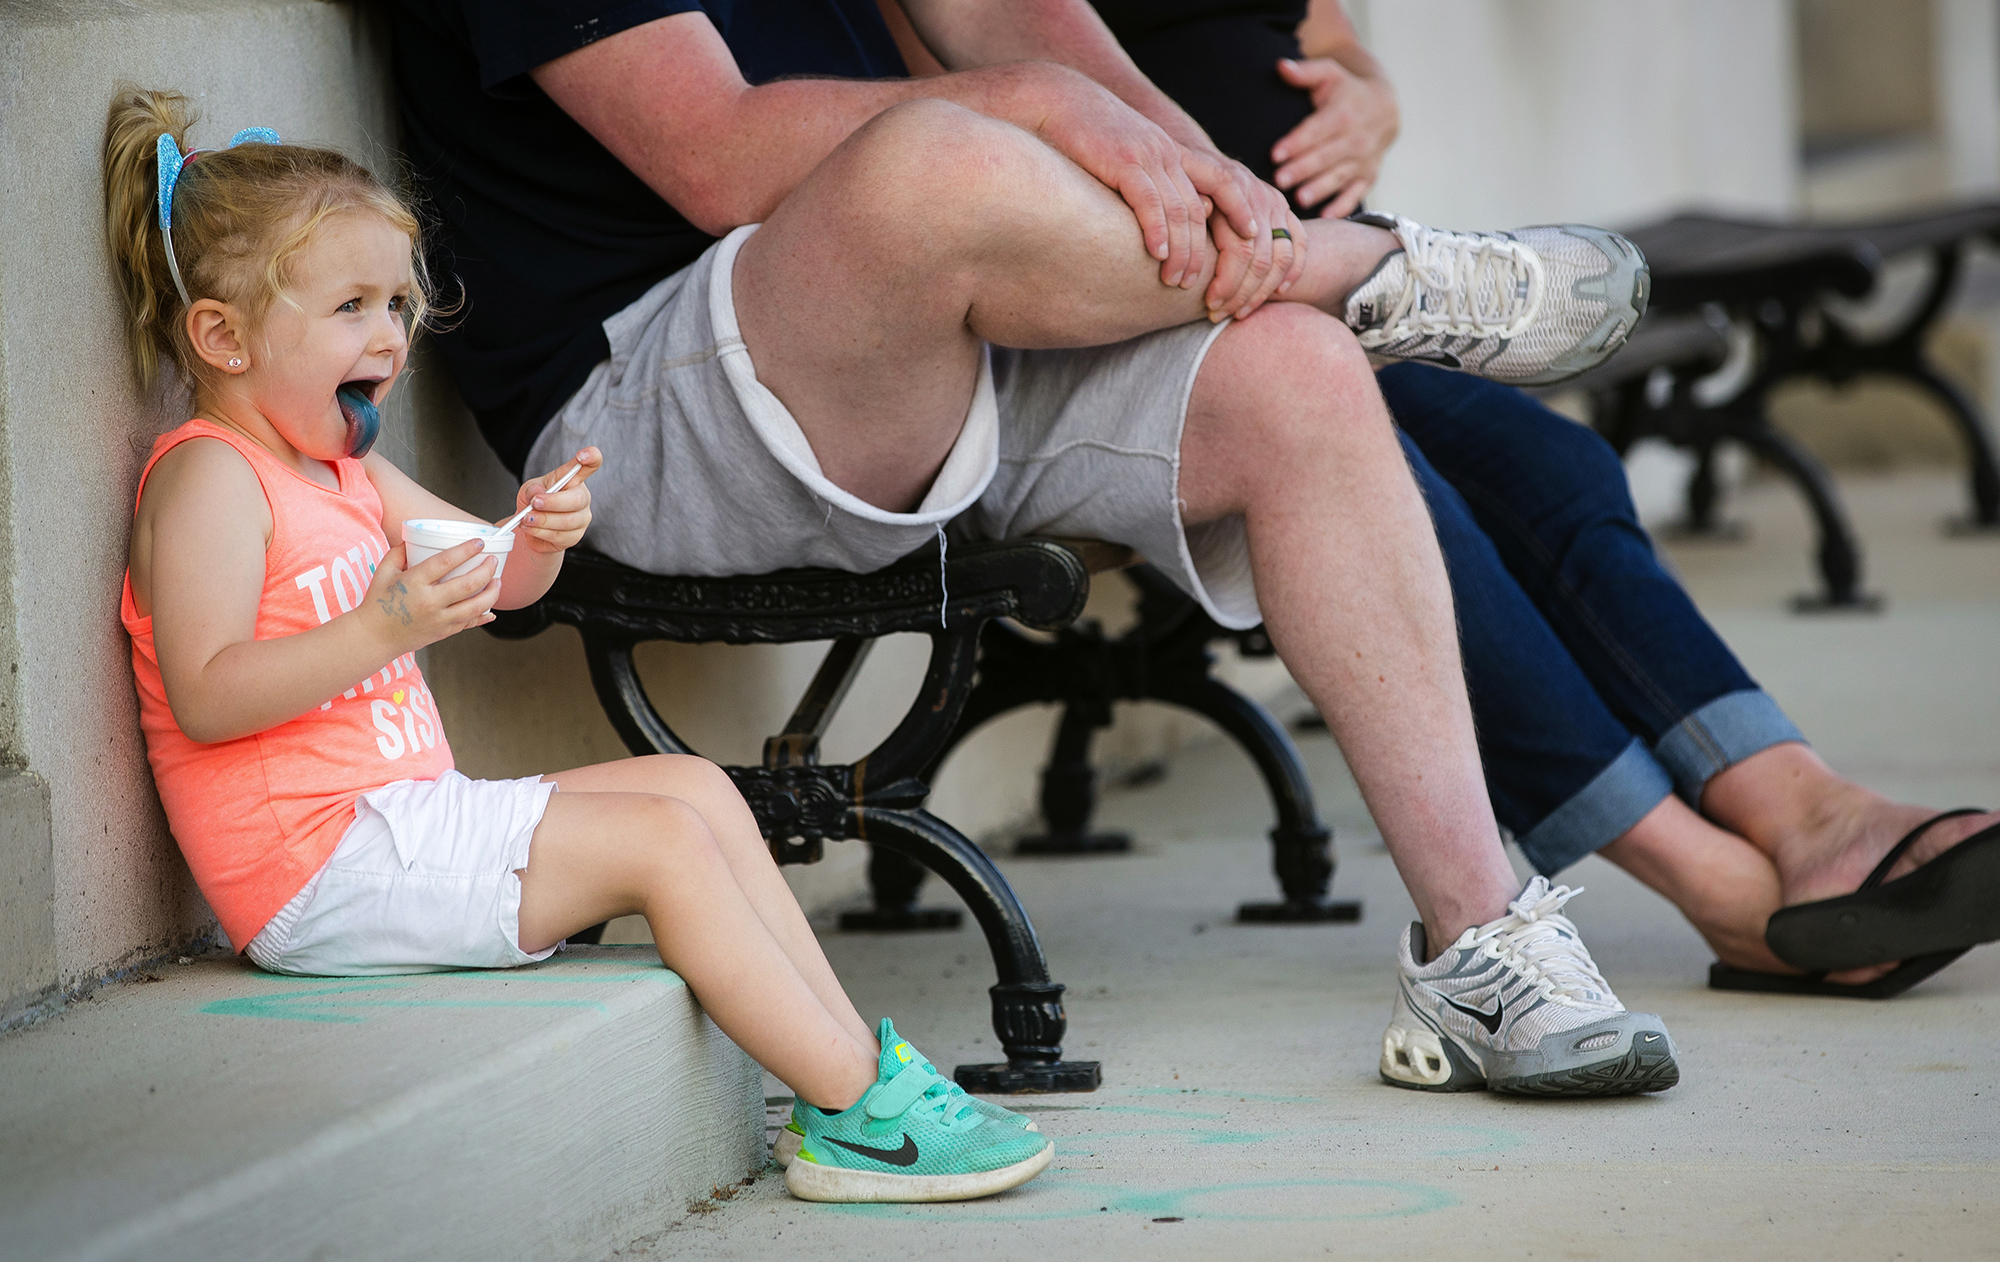 Collyns Constant, three, licks her lower lip with a blue, raspberry flavored tongue as she sits with her parents, Dustin and Ashley Constant, while enjoying an icee in downtown Williamsville Thursday, July 12, 2018. [Ted Schurter/The State Journal-Register]